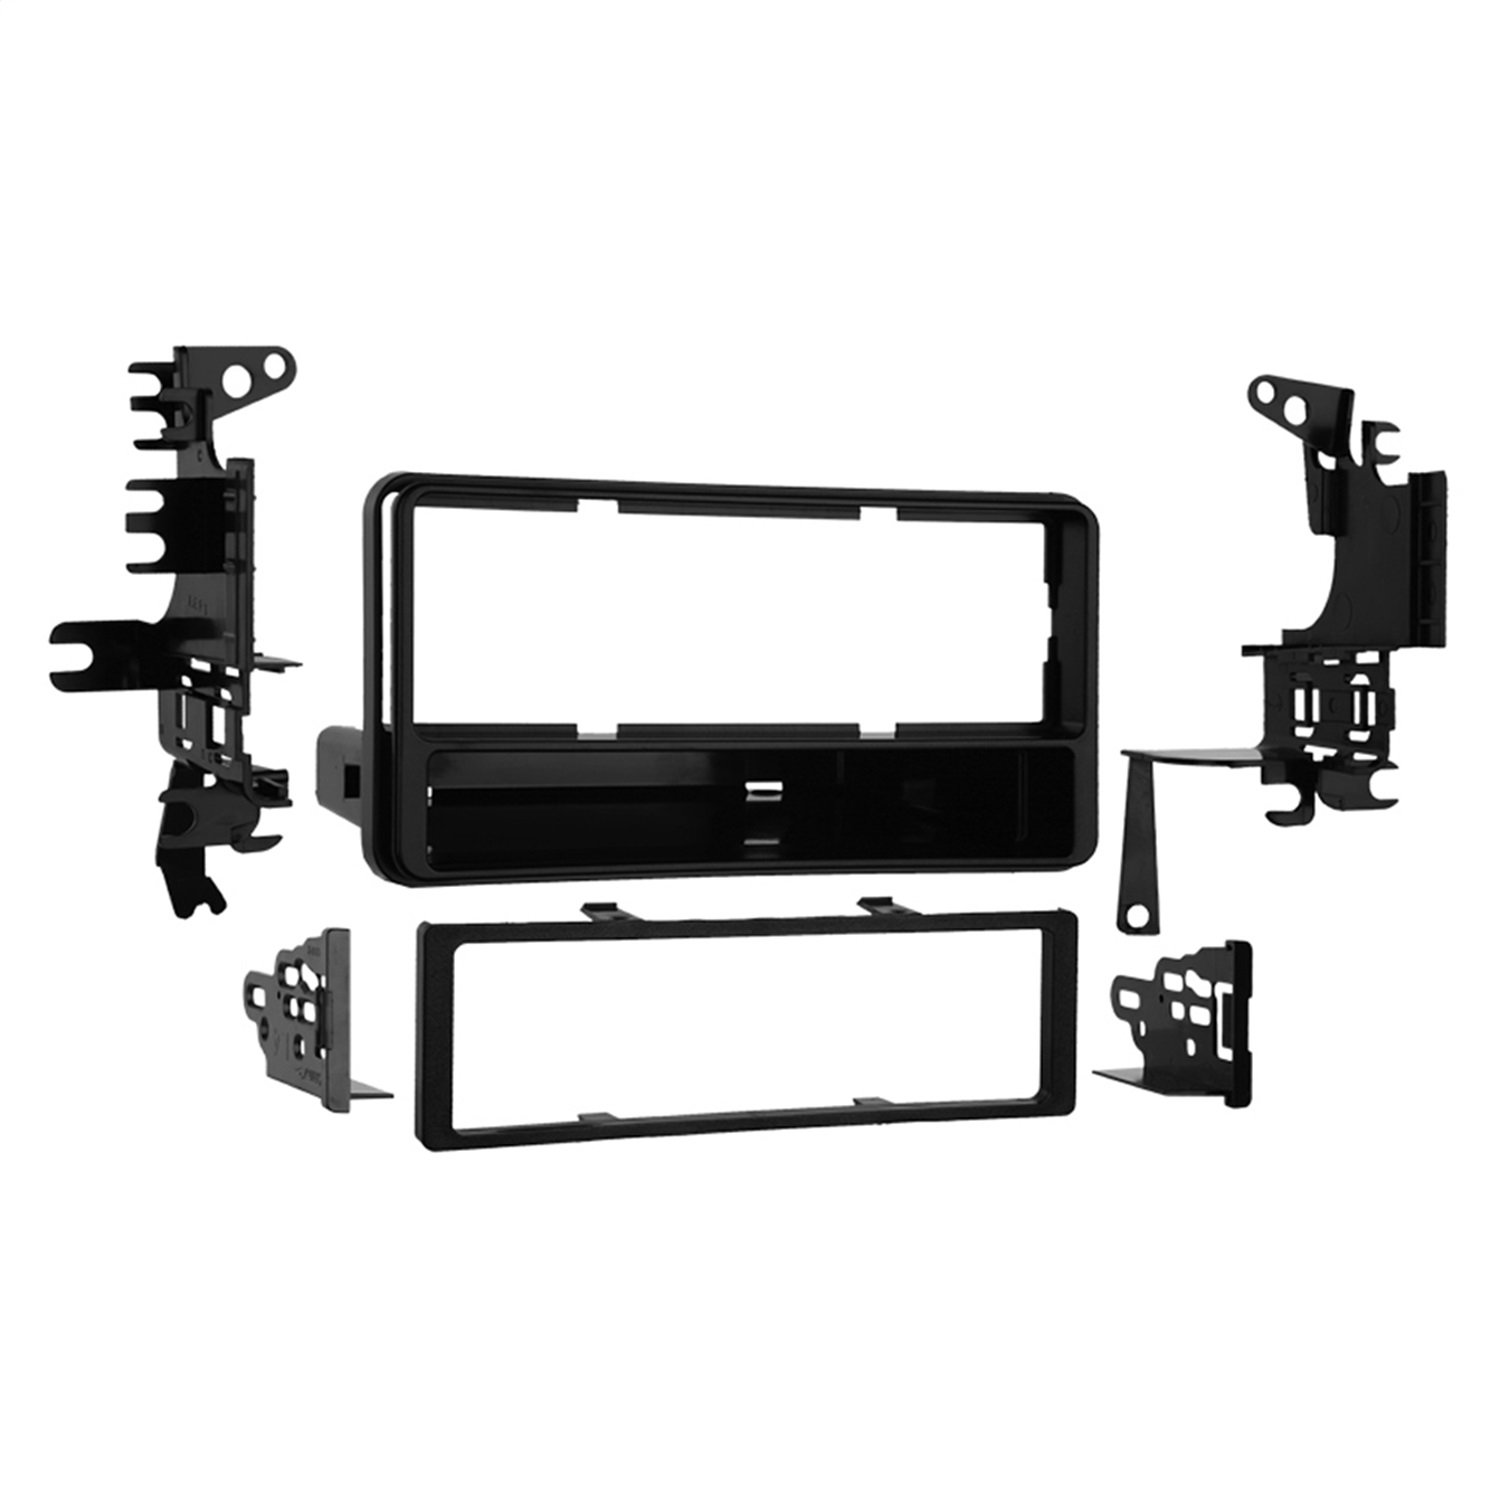 Metra 99-8202 Dash Kit For Toyota Multikit00-05 Metra Electronics Corporation